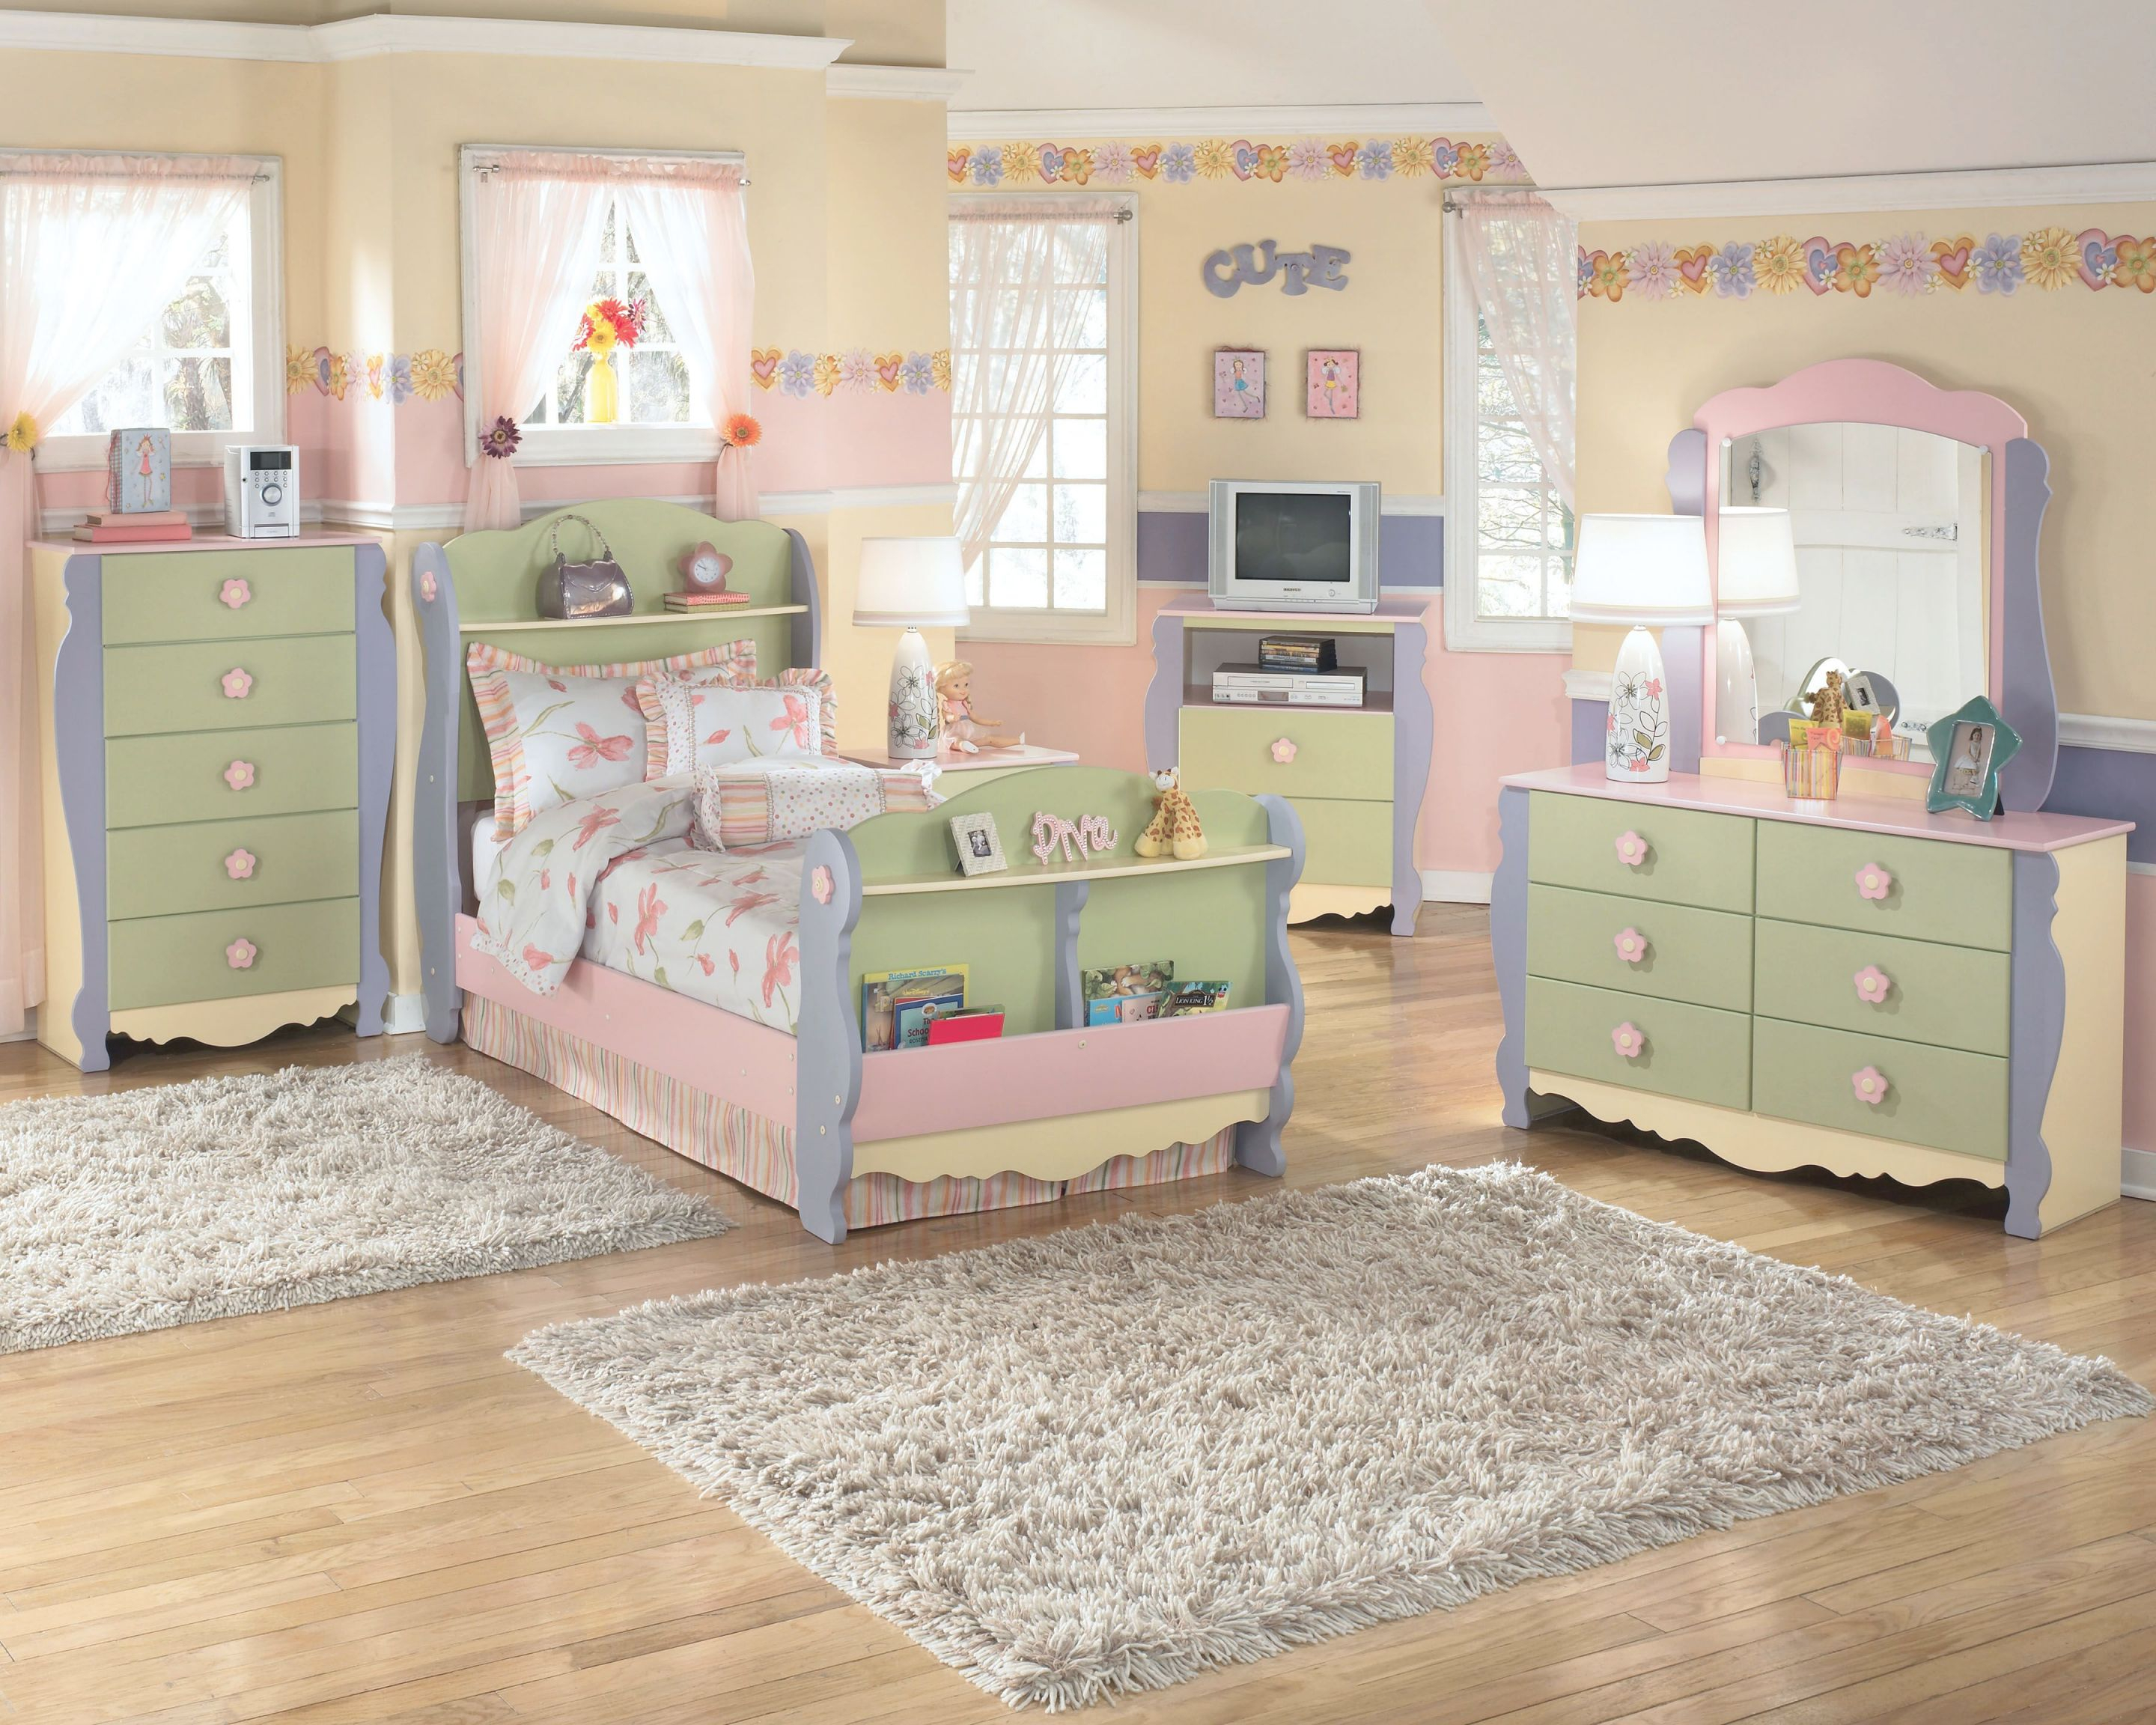 Such A Sweet Ashley Furniture Home #bedroom For A regarding Lovely Bedroom Set Girl